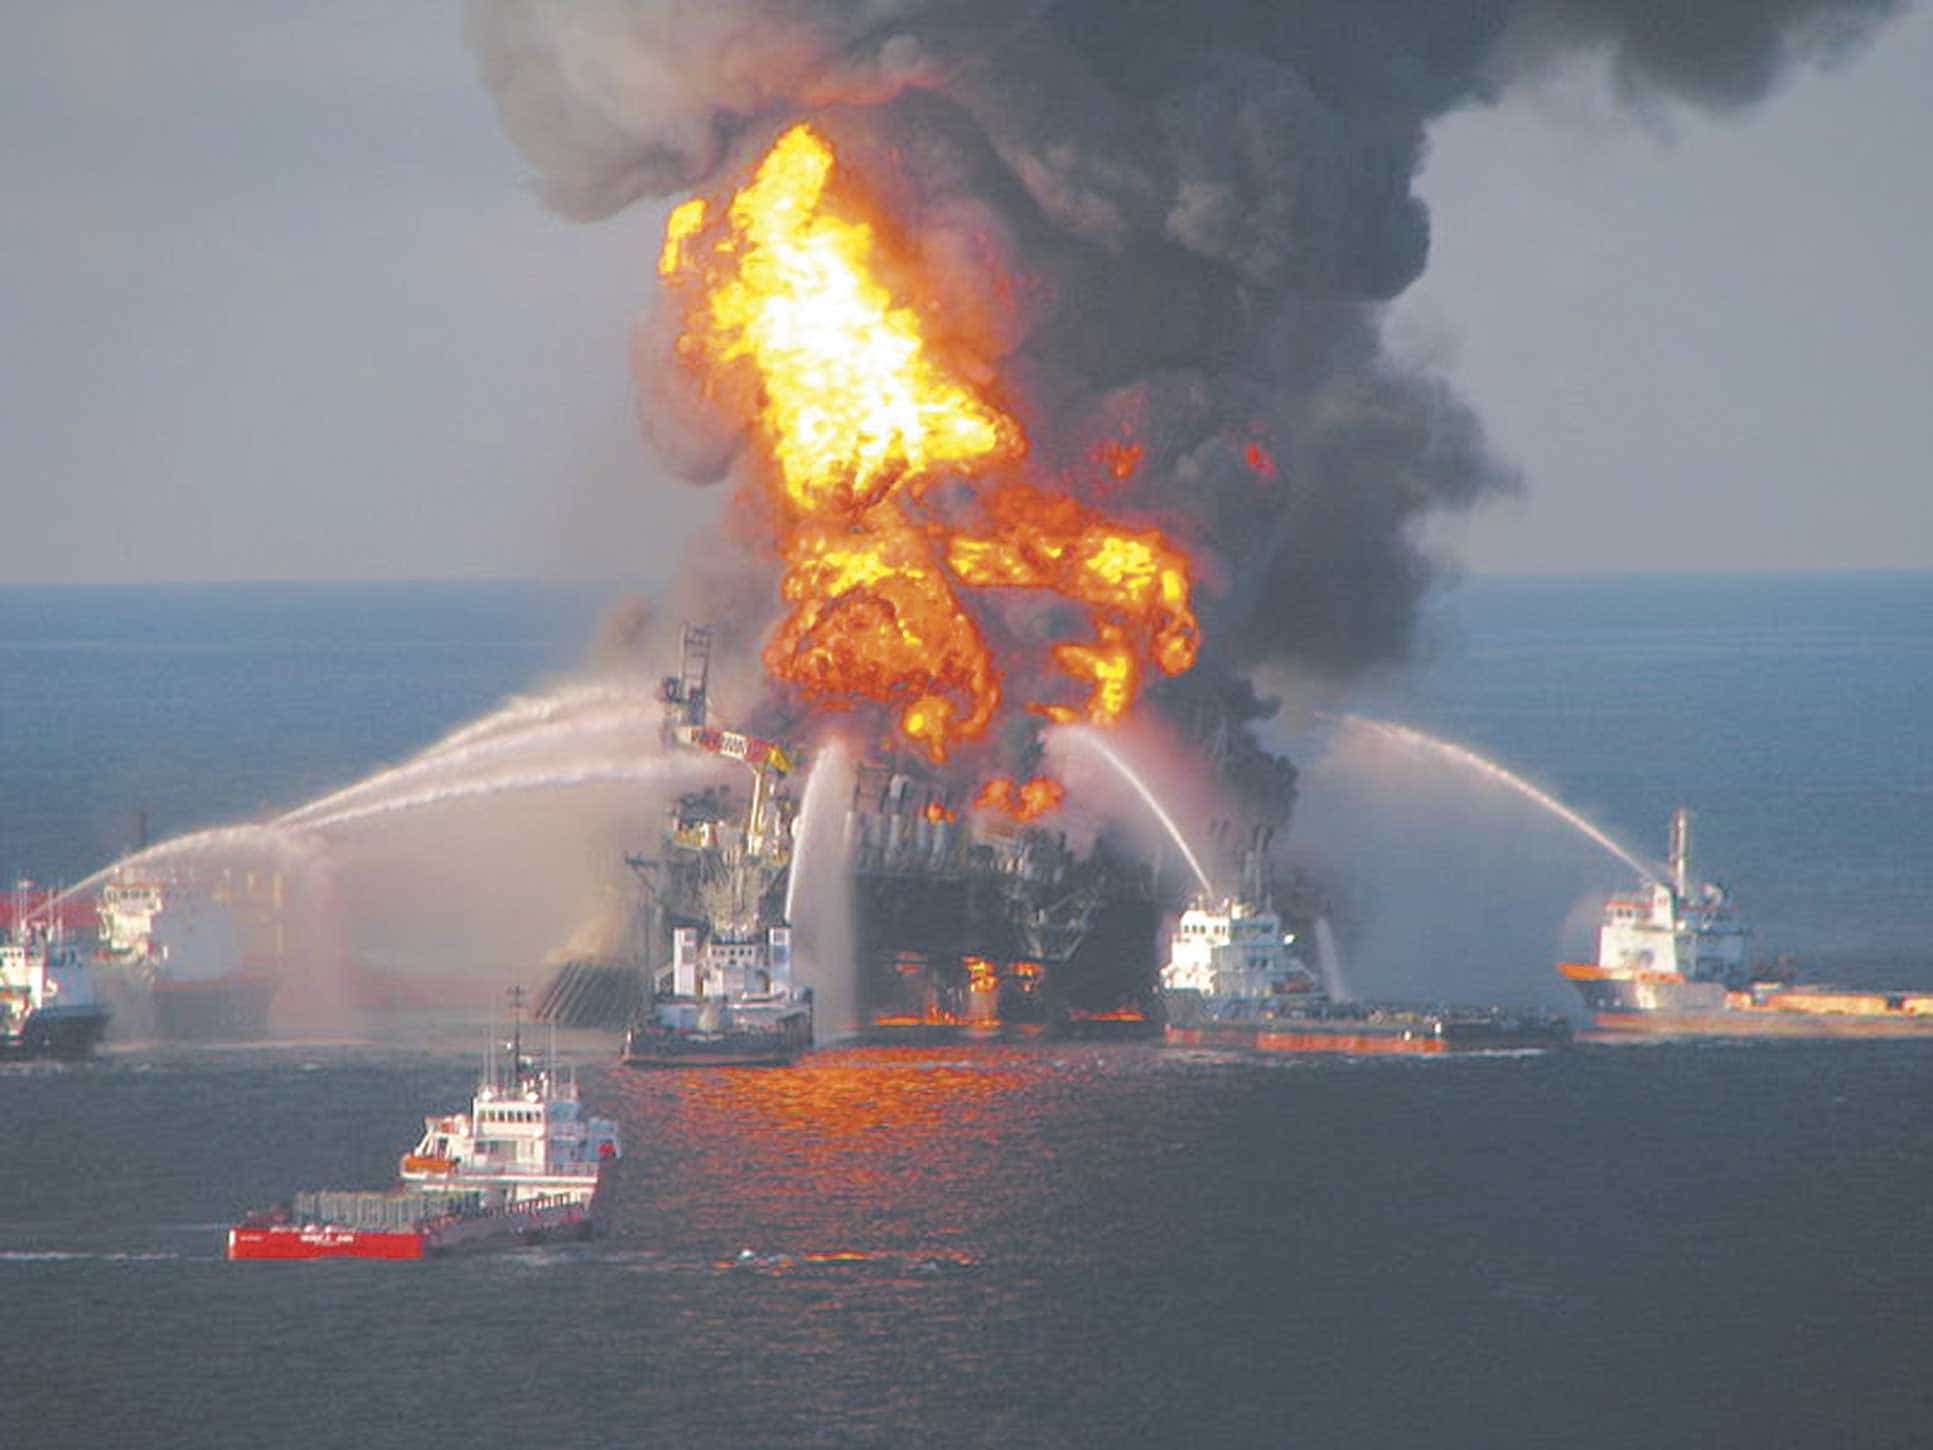 Reports show Deepwater Horizon blast triggered by methane bubble. Investigation reveals accident on Gulf of Mexico rig was caused when methane gas escaped from oil well before exploding. Via The Guardian